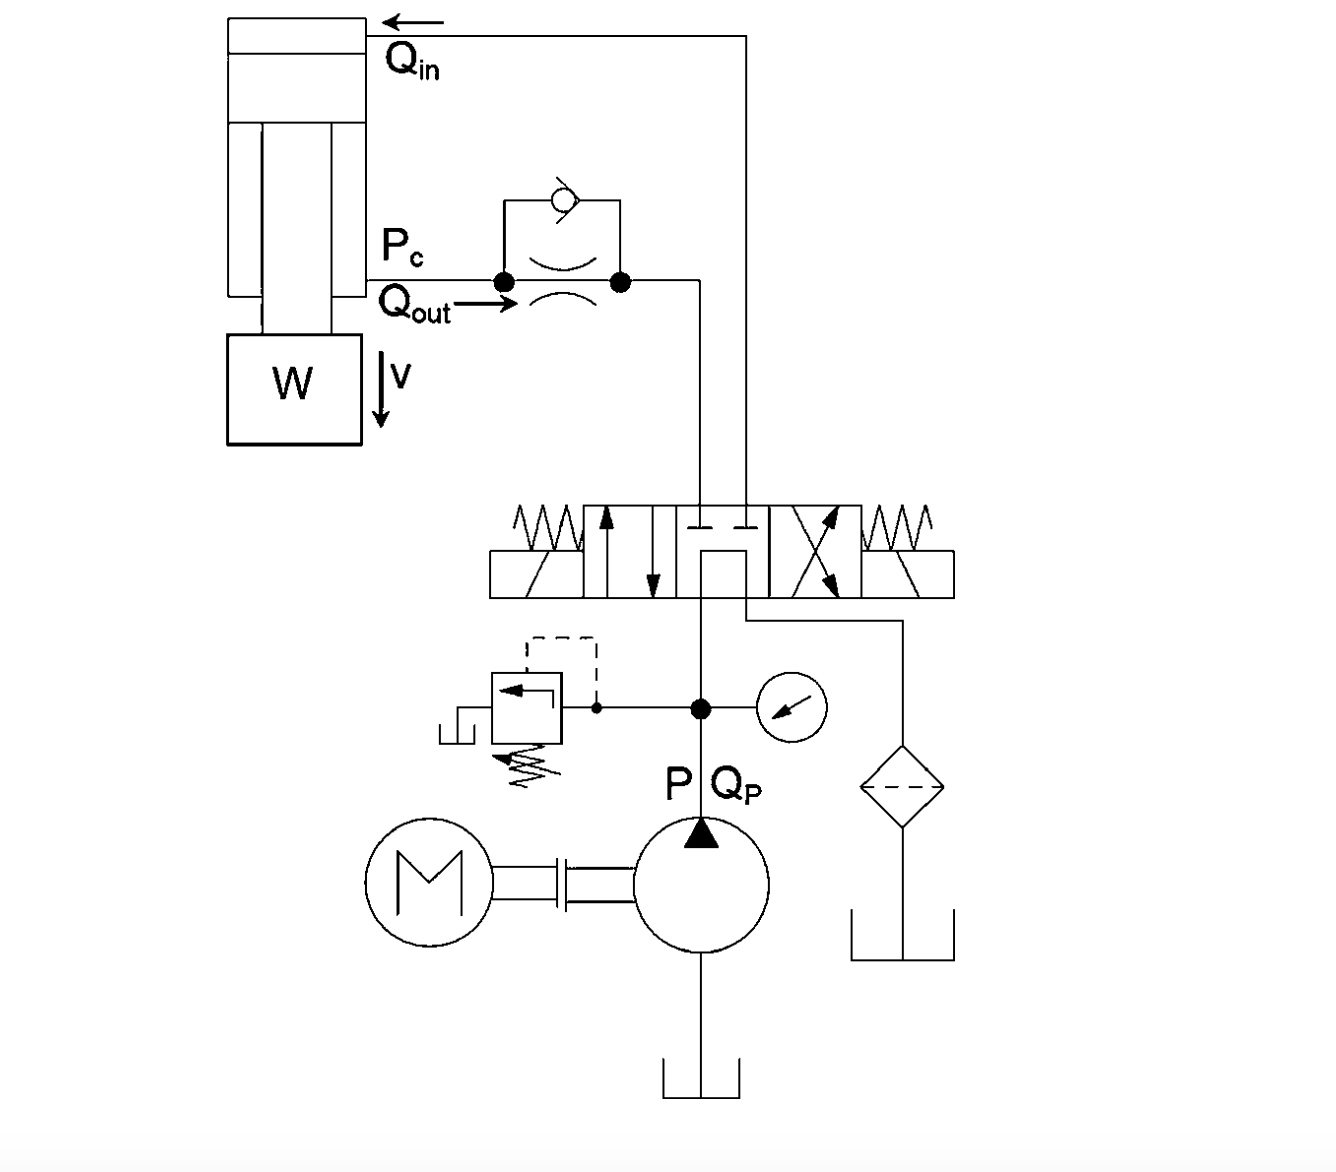 Solved: Shown Is The Hydraulic Circuit Of A Load-lifting H